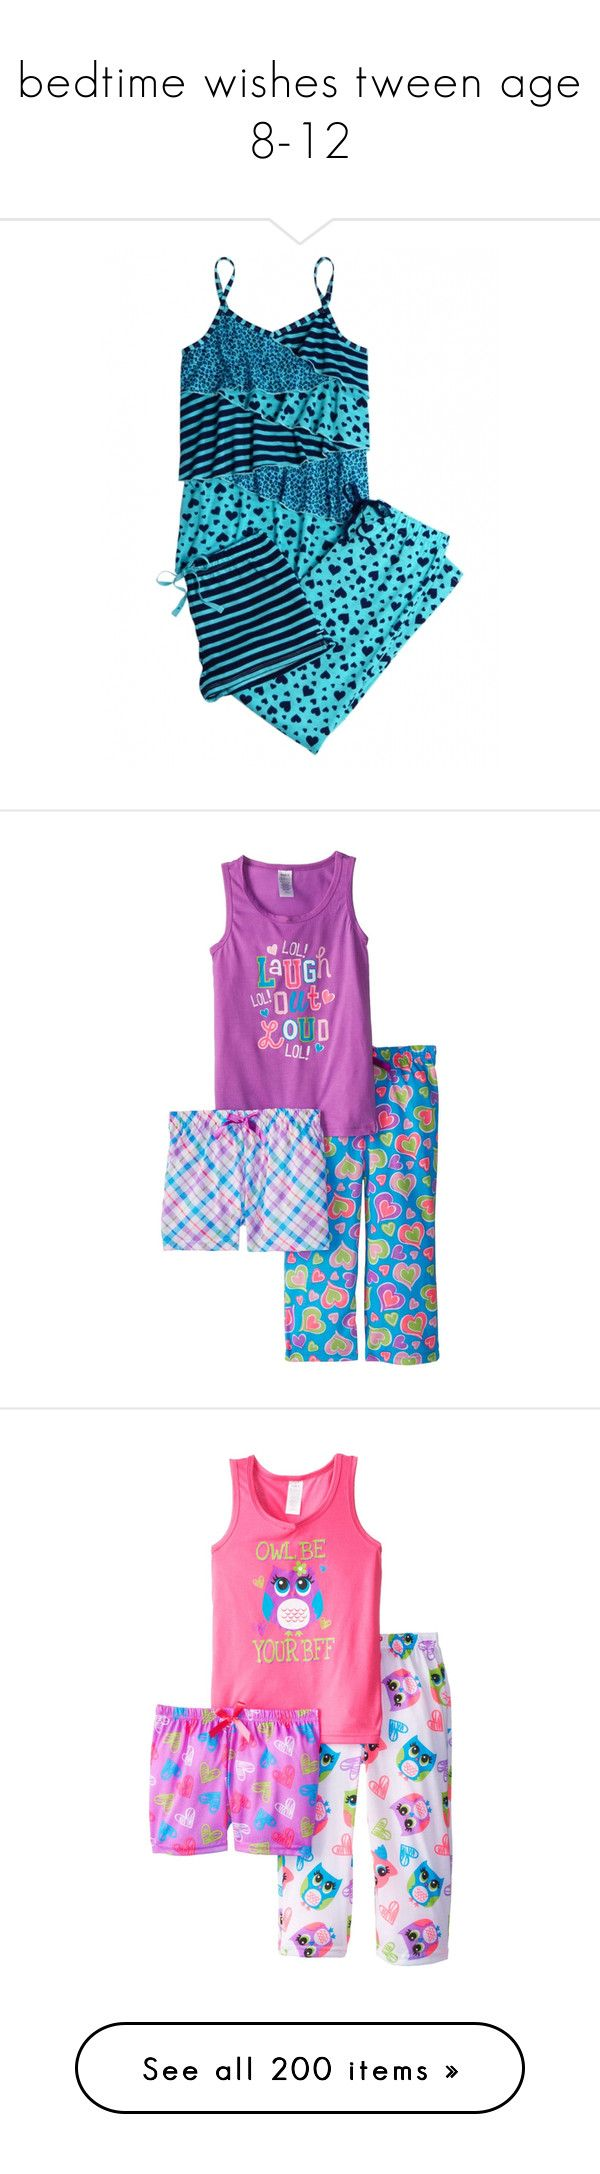 """""""bedtime wishes tween age 8-12"""" by sterlingkitten ❤ liked on Polyvore featuring justice, tween girl, kids clothes, babies, girls, kids, intimates, sleepwear, pajamas and disney pjs"""